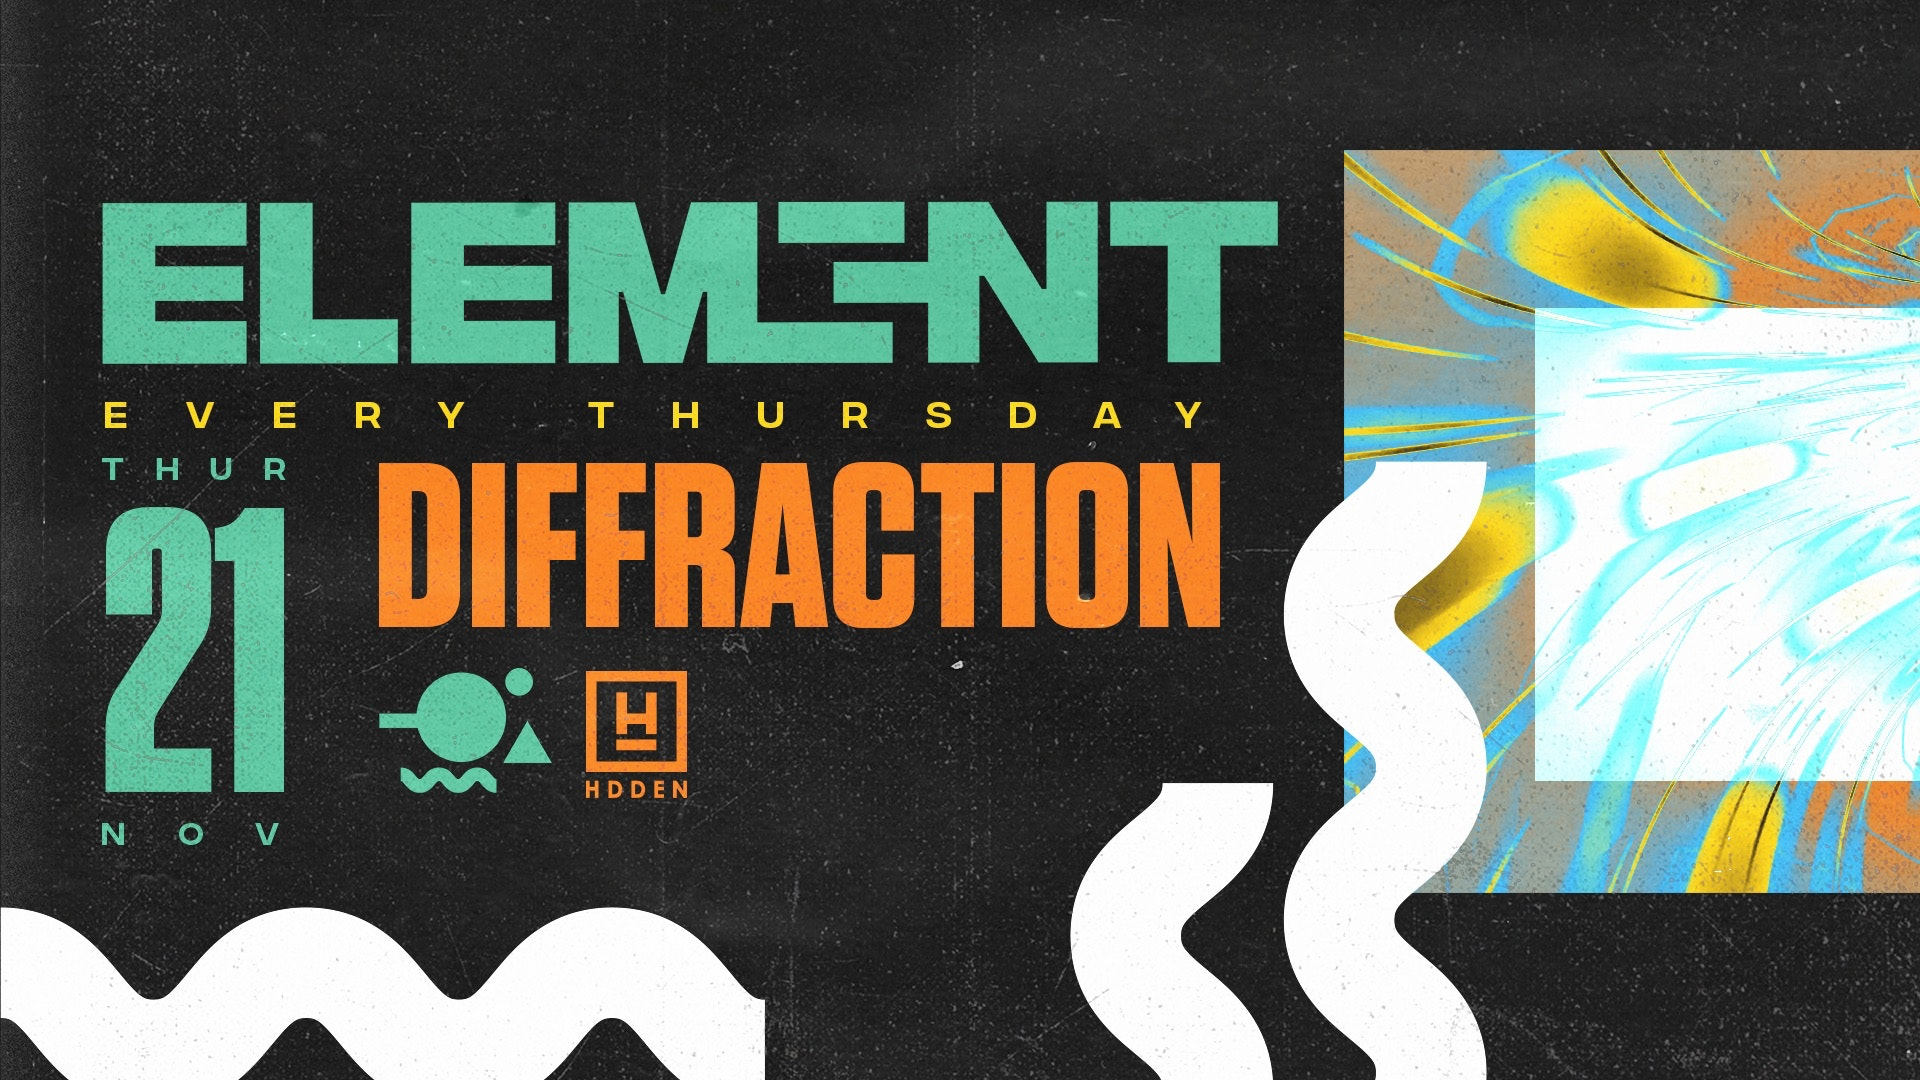 Element presents Diffraction Disco